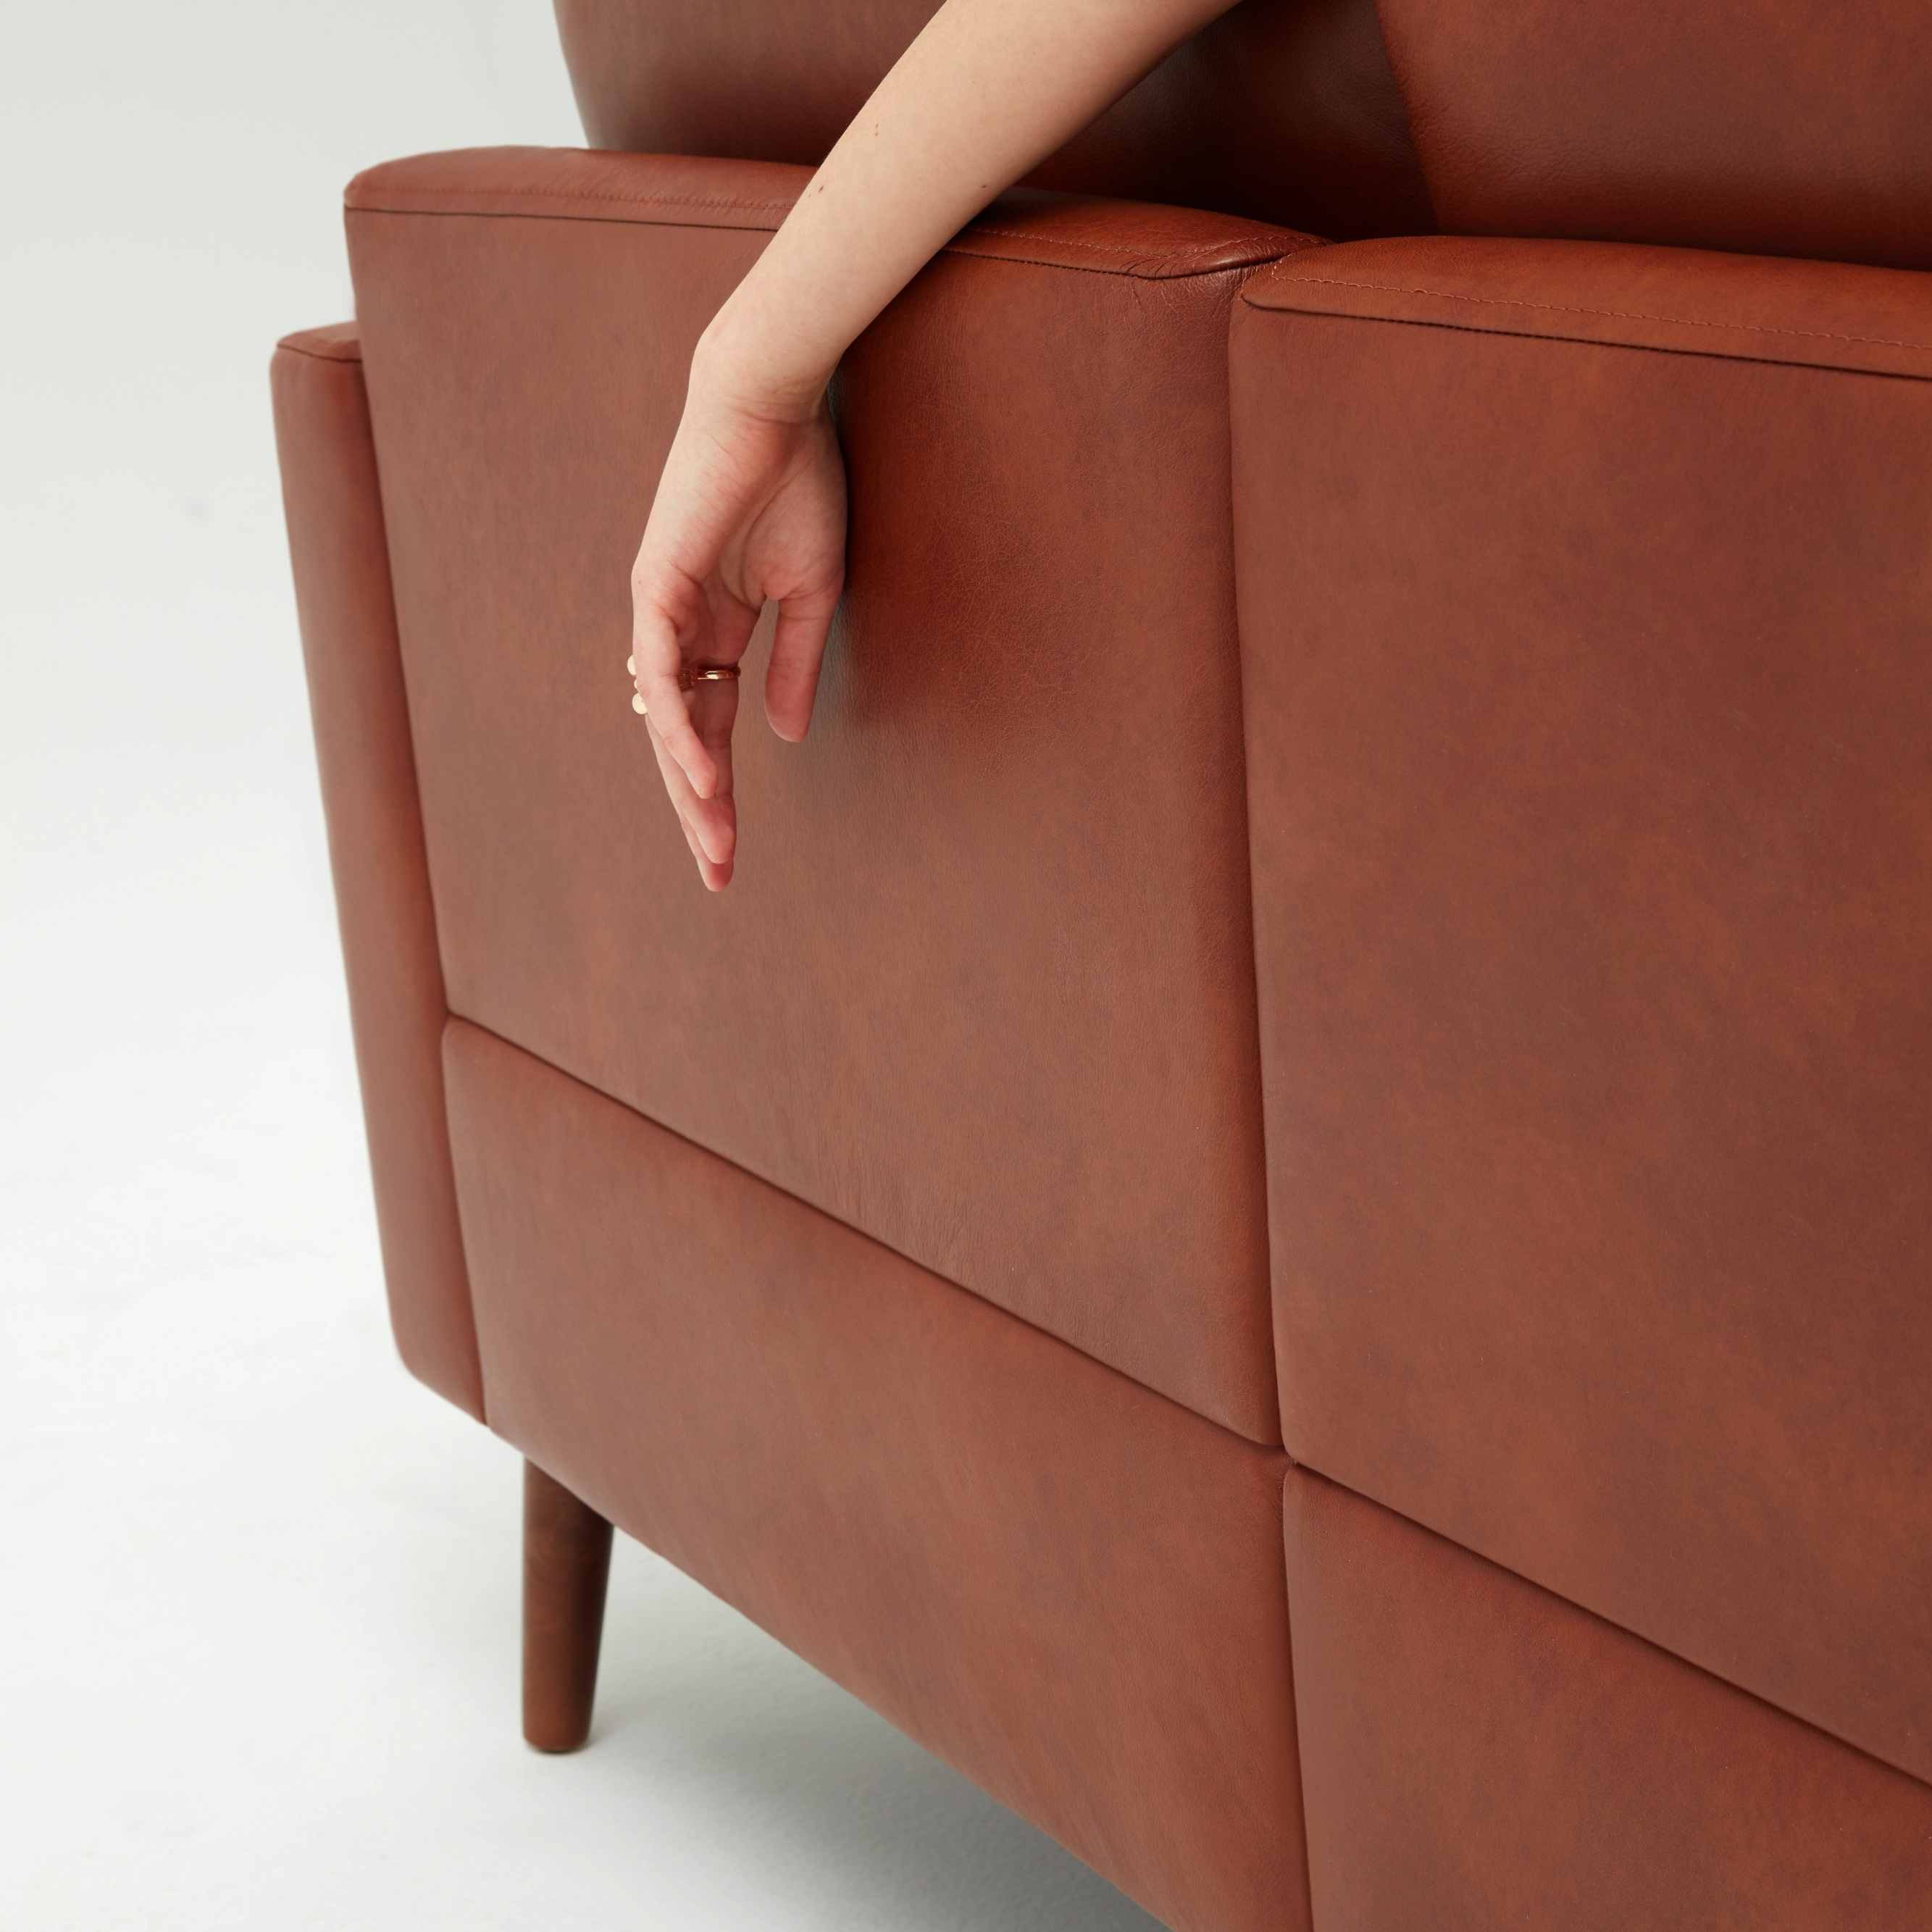 Astounding The Affordable New Leather Sofa From Burrow Caraccident5 Cool Chair Designs And Ideas Caraccident5Info